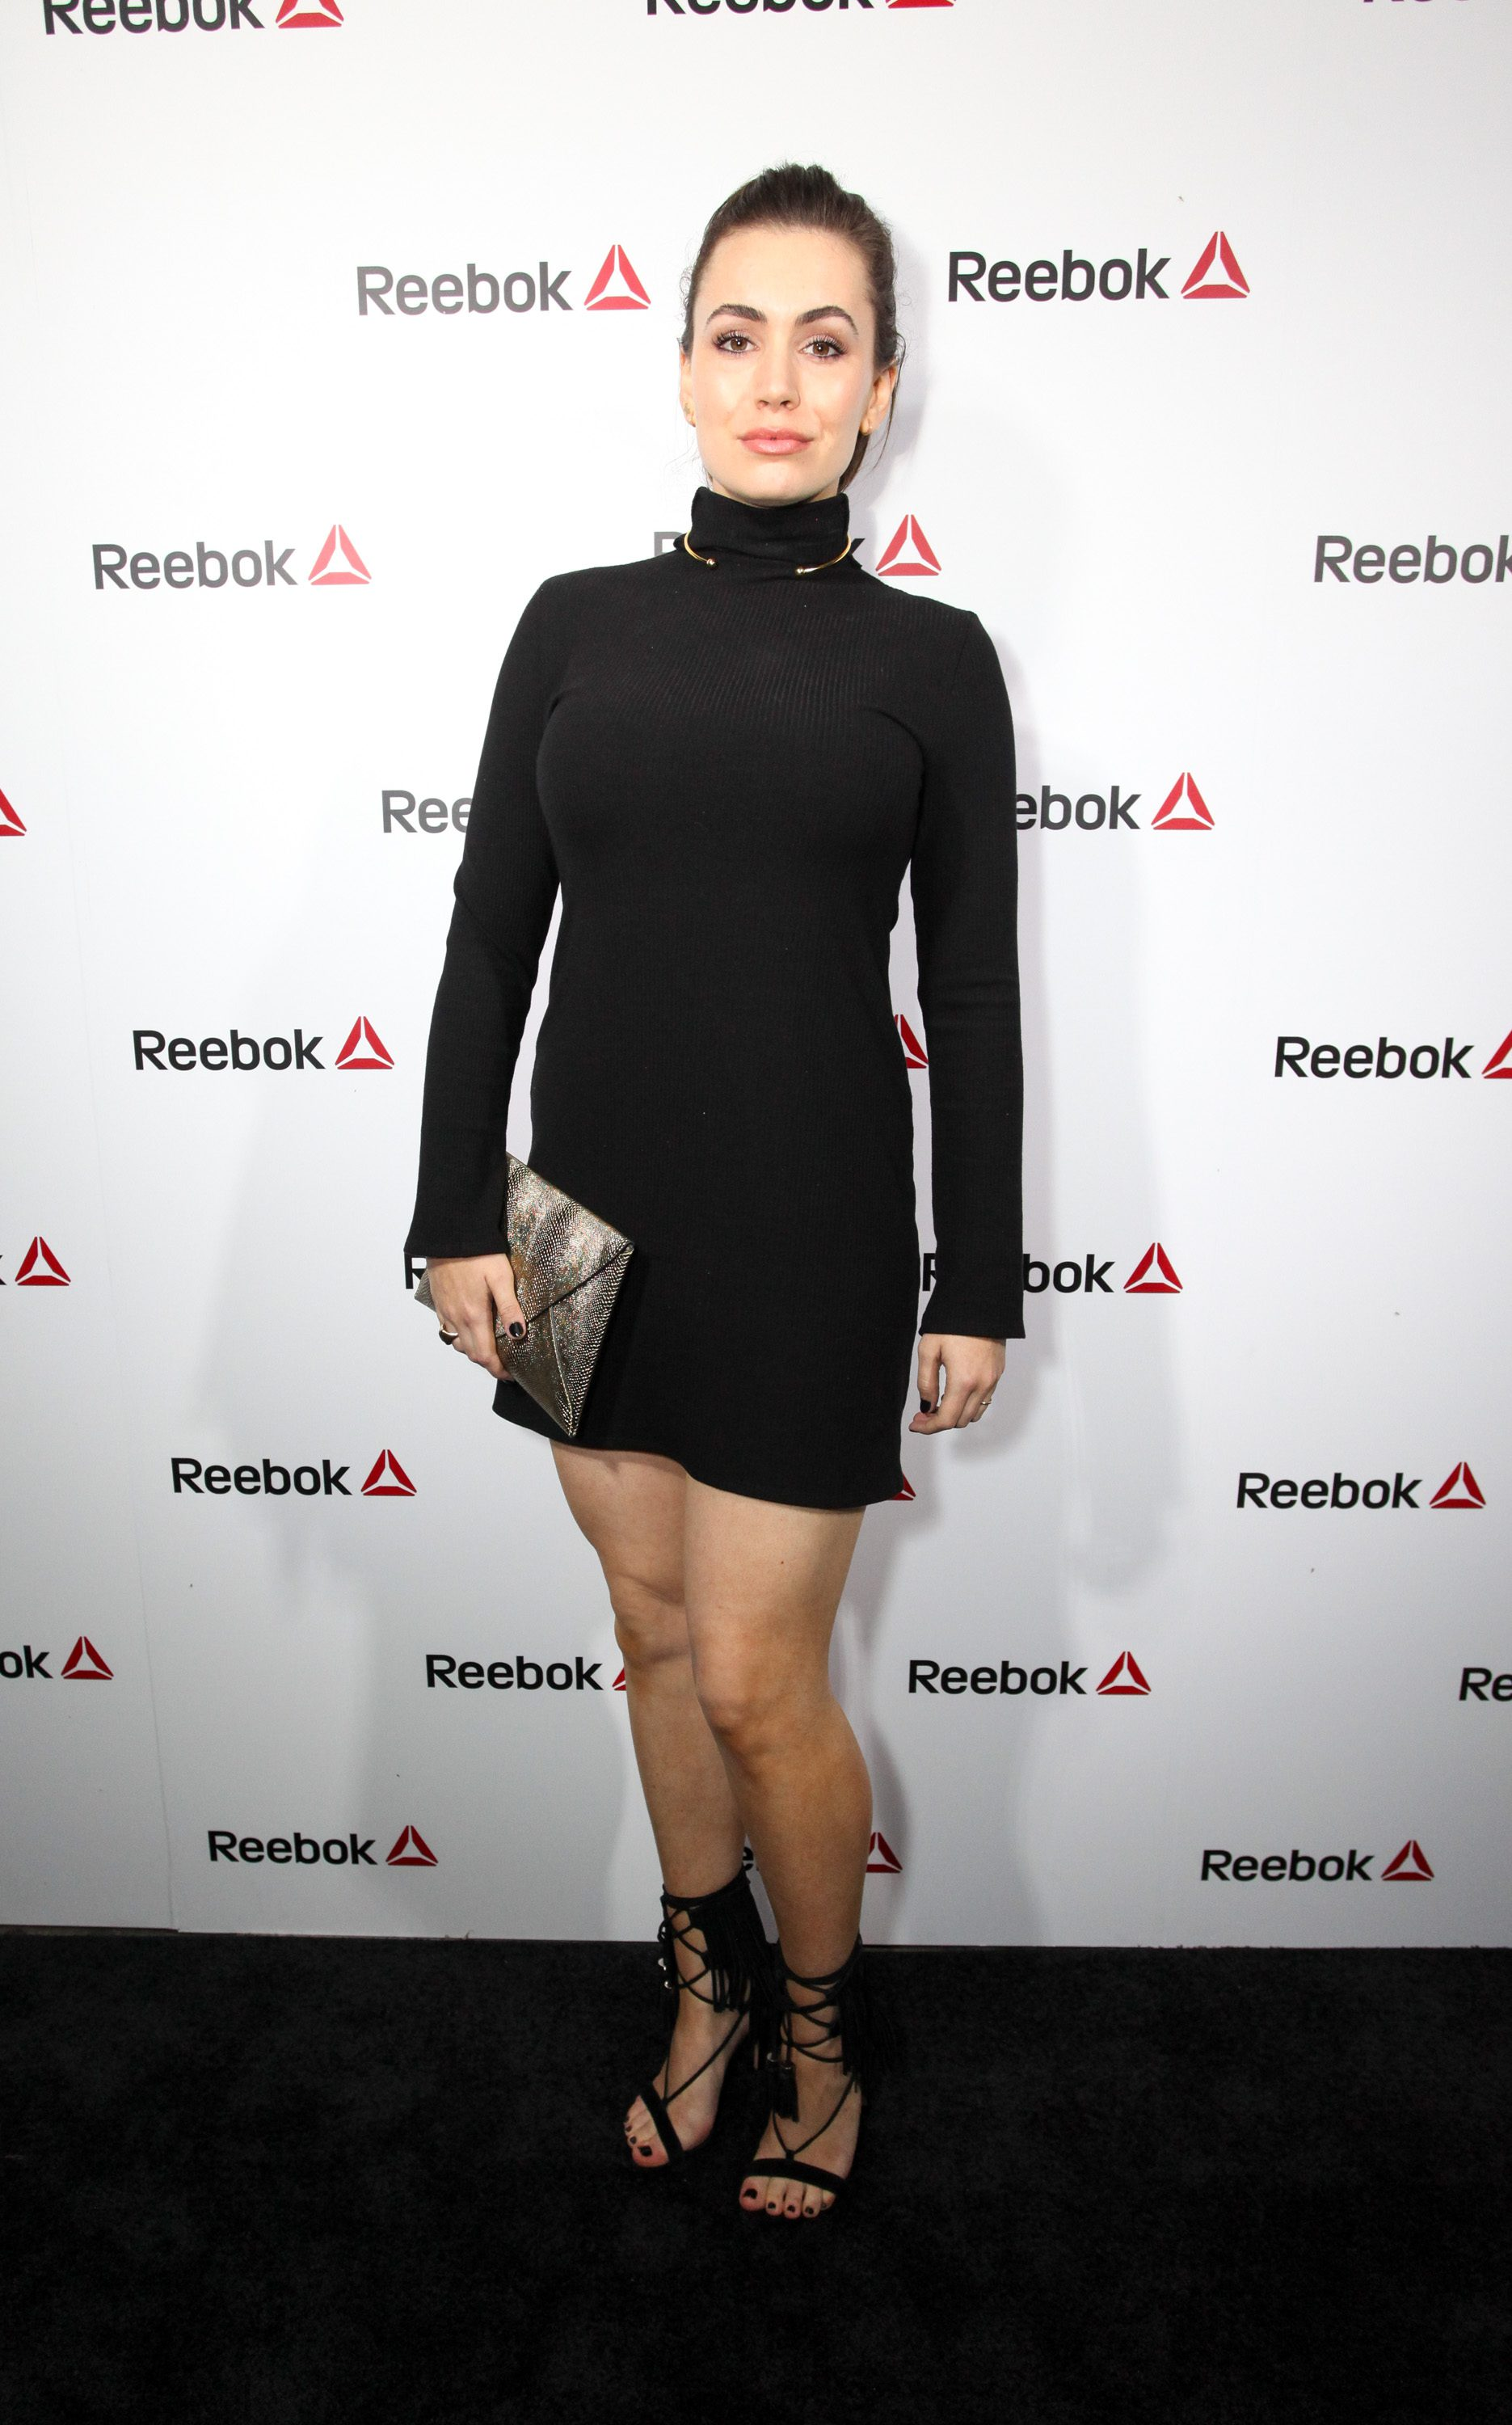 NEW YORK, NY - SEPTEMBER 16: Sophie Simmons attends The Reebok #girlswithgrit showcase at Marquee on September 16, 2015 in New York City. (Photo by Donald Bowers/Getty Images for Reebok)